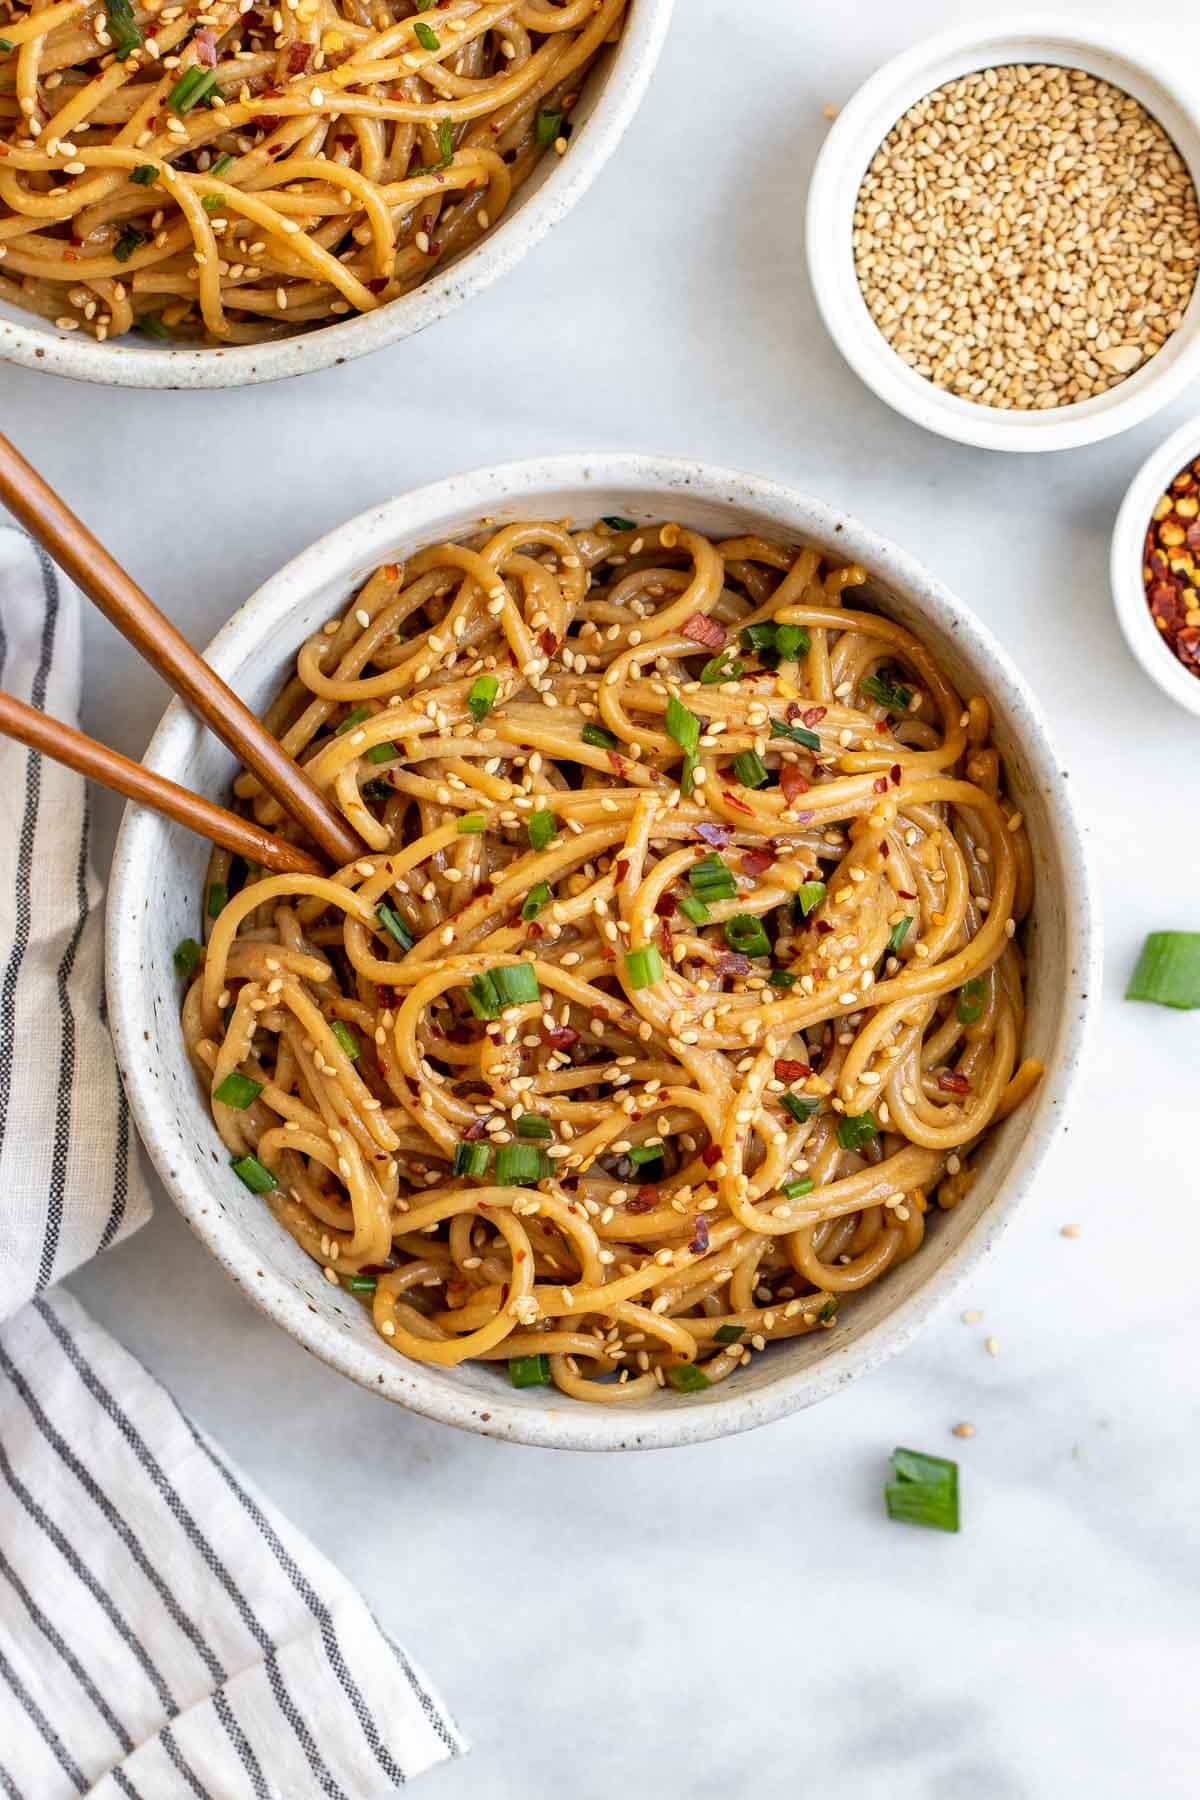 Two bowls with the sesame noodles with chives on top.